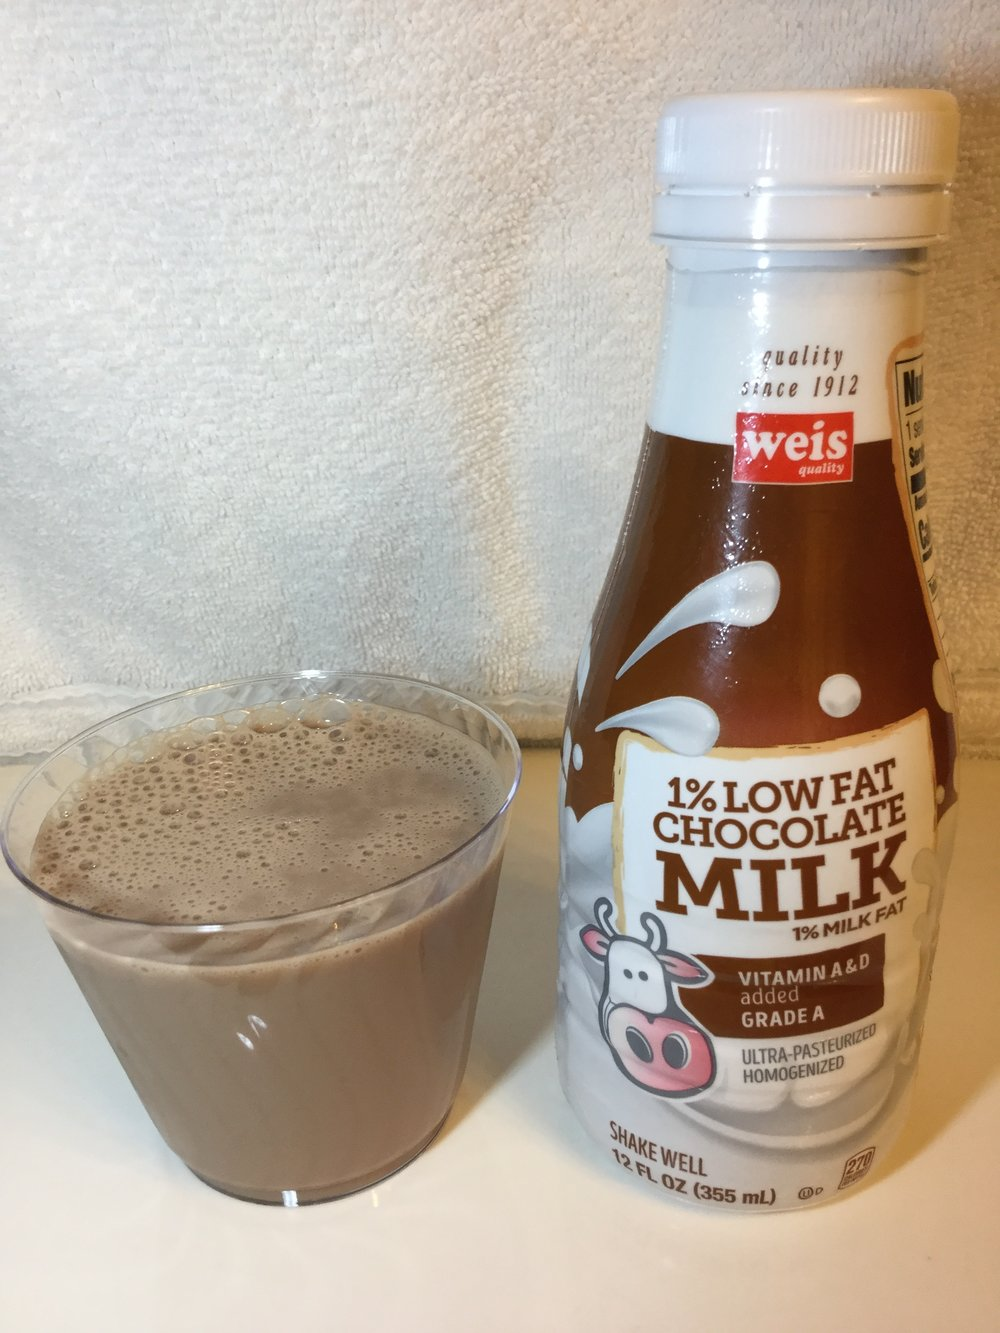 Weis Lowfat Chocolate Milk Cup